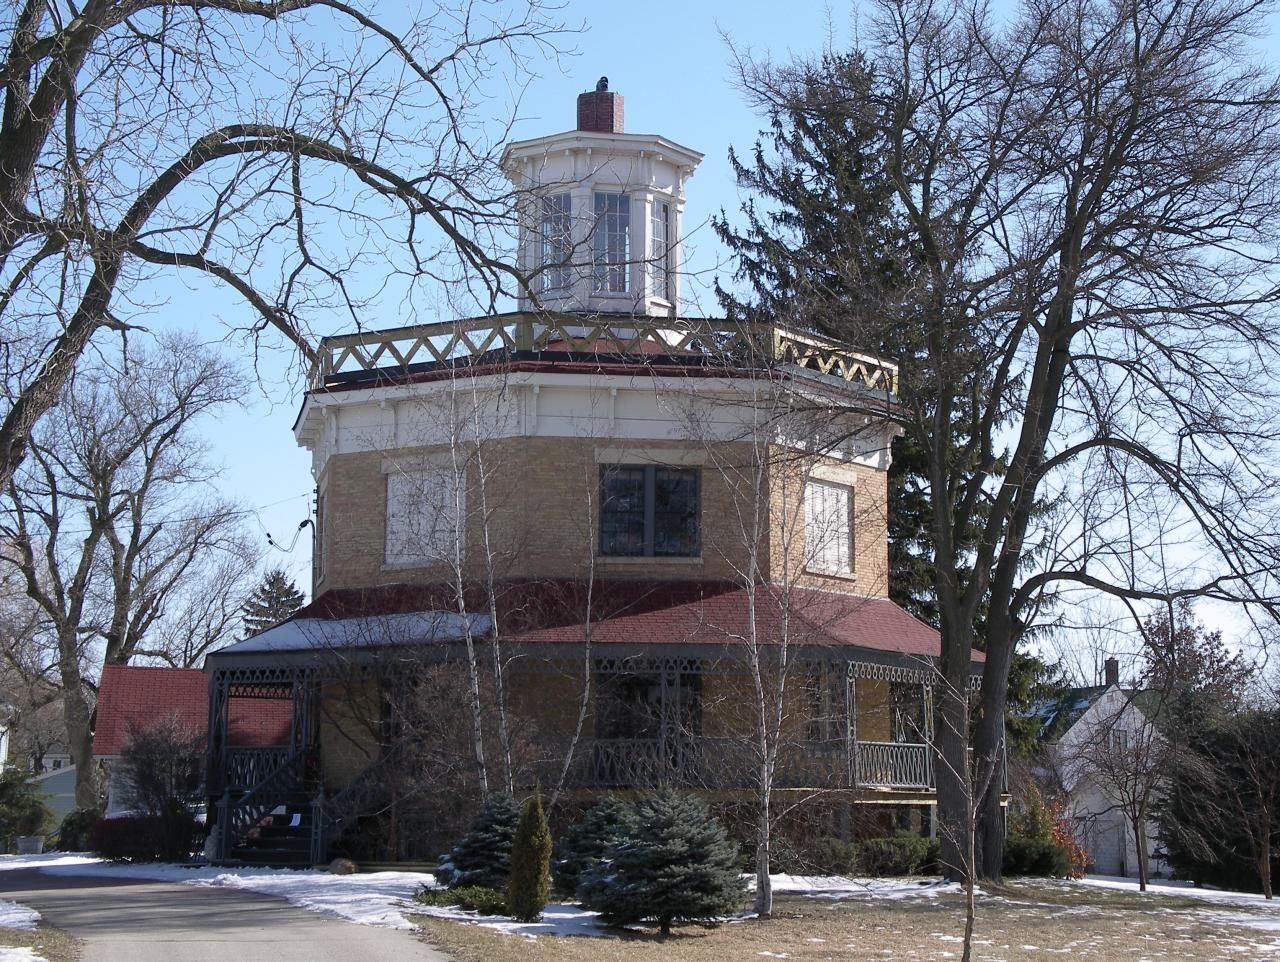 Elkhorn Wi Octagon Octagon House Hexagon House Round Building